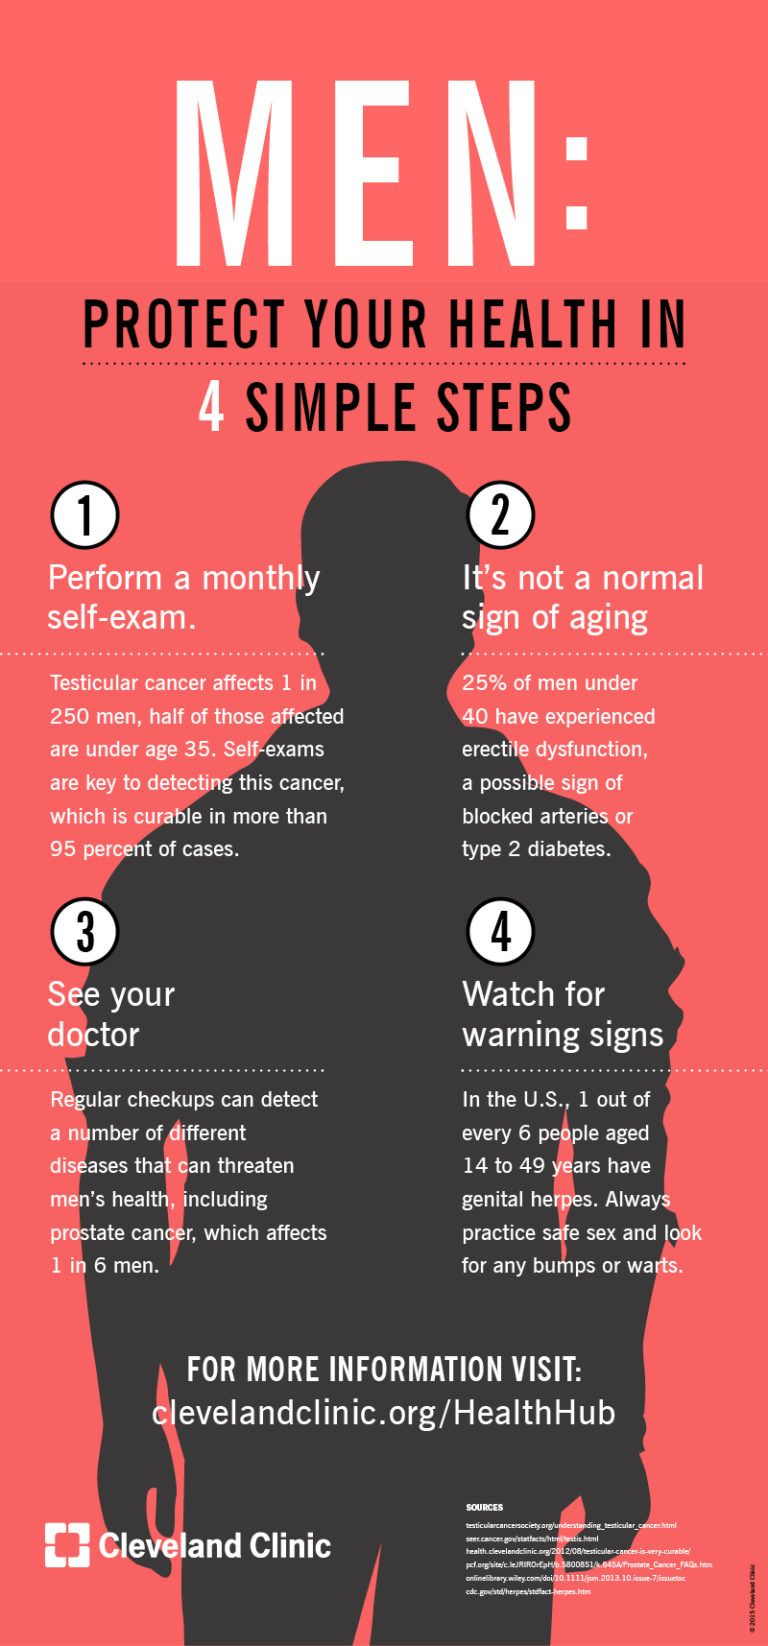 Men Protect Your Health In 4 Simple Steps Infographic Health Health Quotes Motivation Men Health Tips